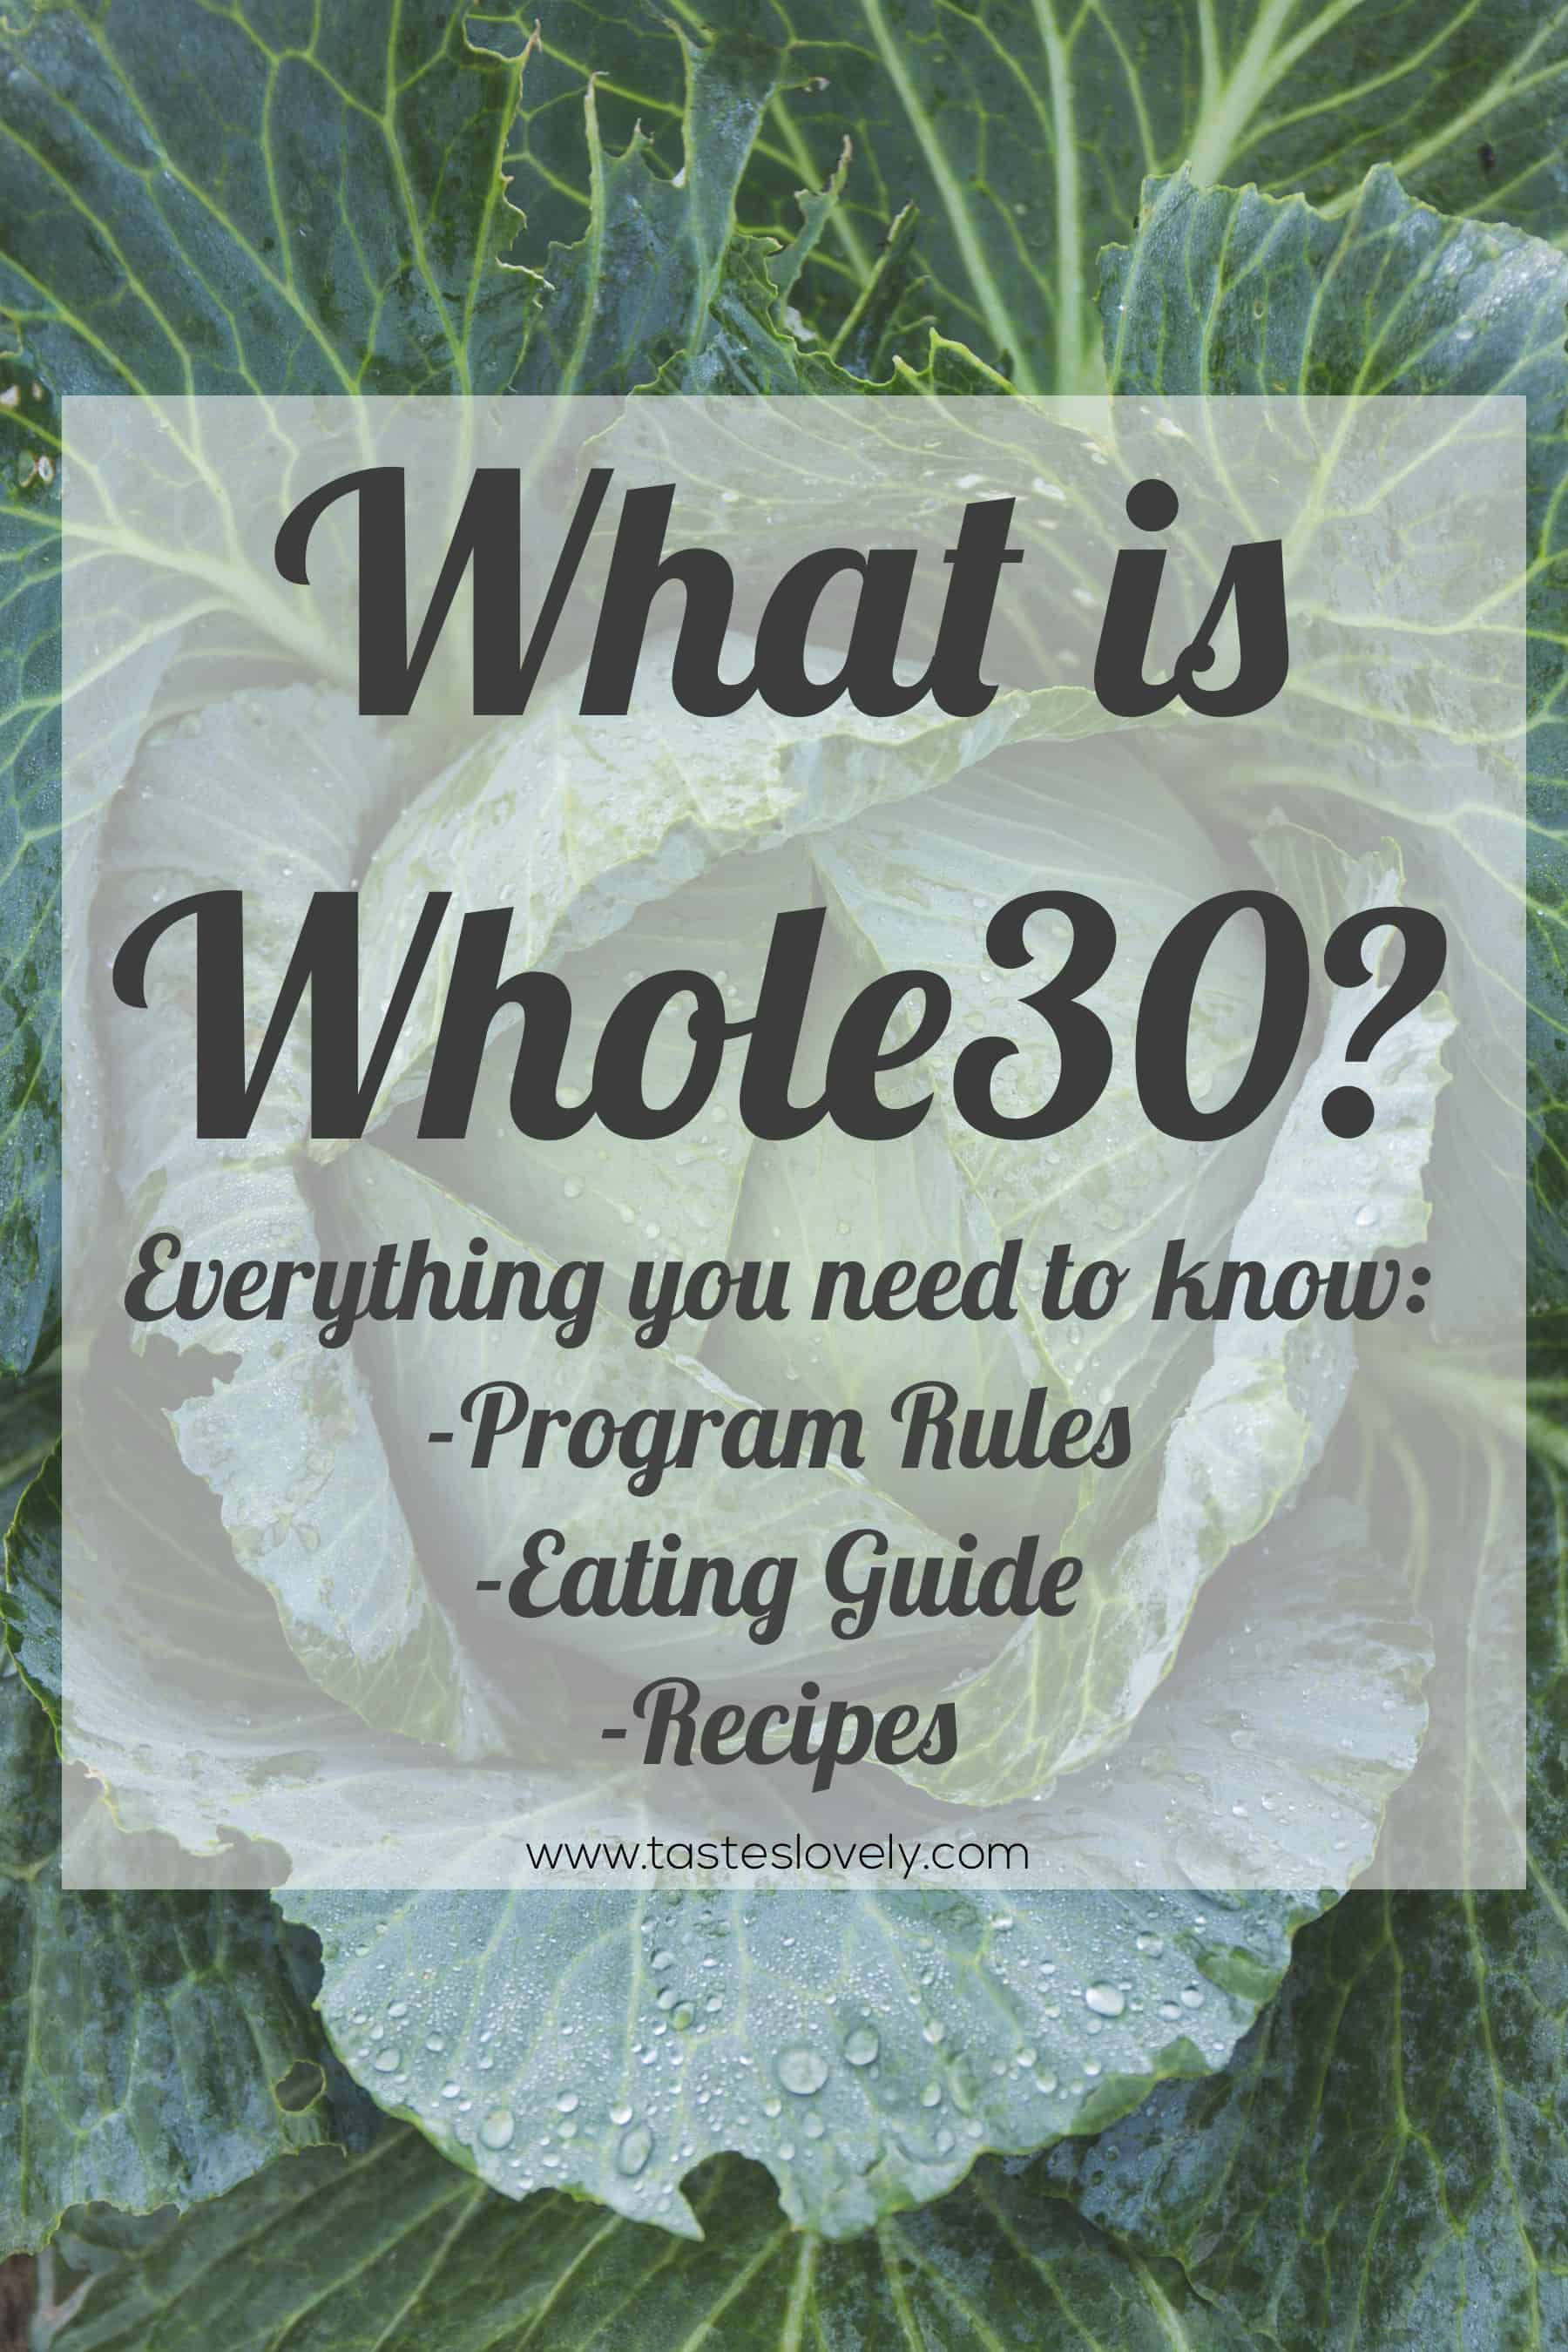 Everything you need to know about the Whole30 diet, including a printable food shopping guide and recipes to get you through your Whole30! #whole30 #whole30diet